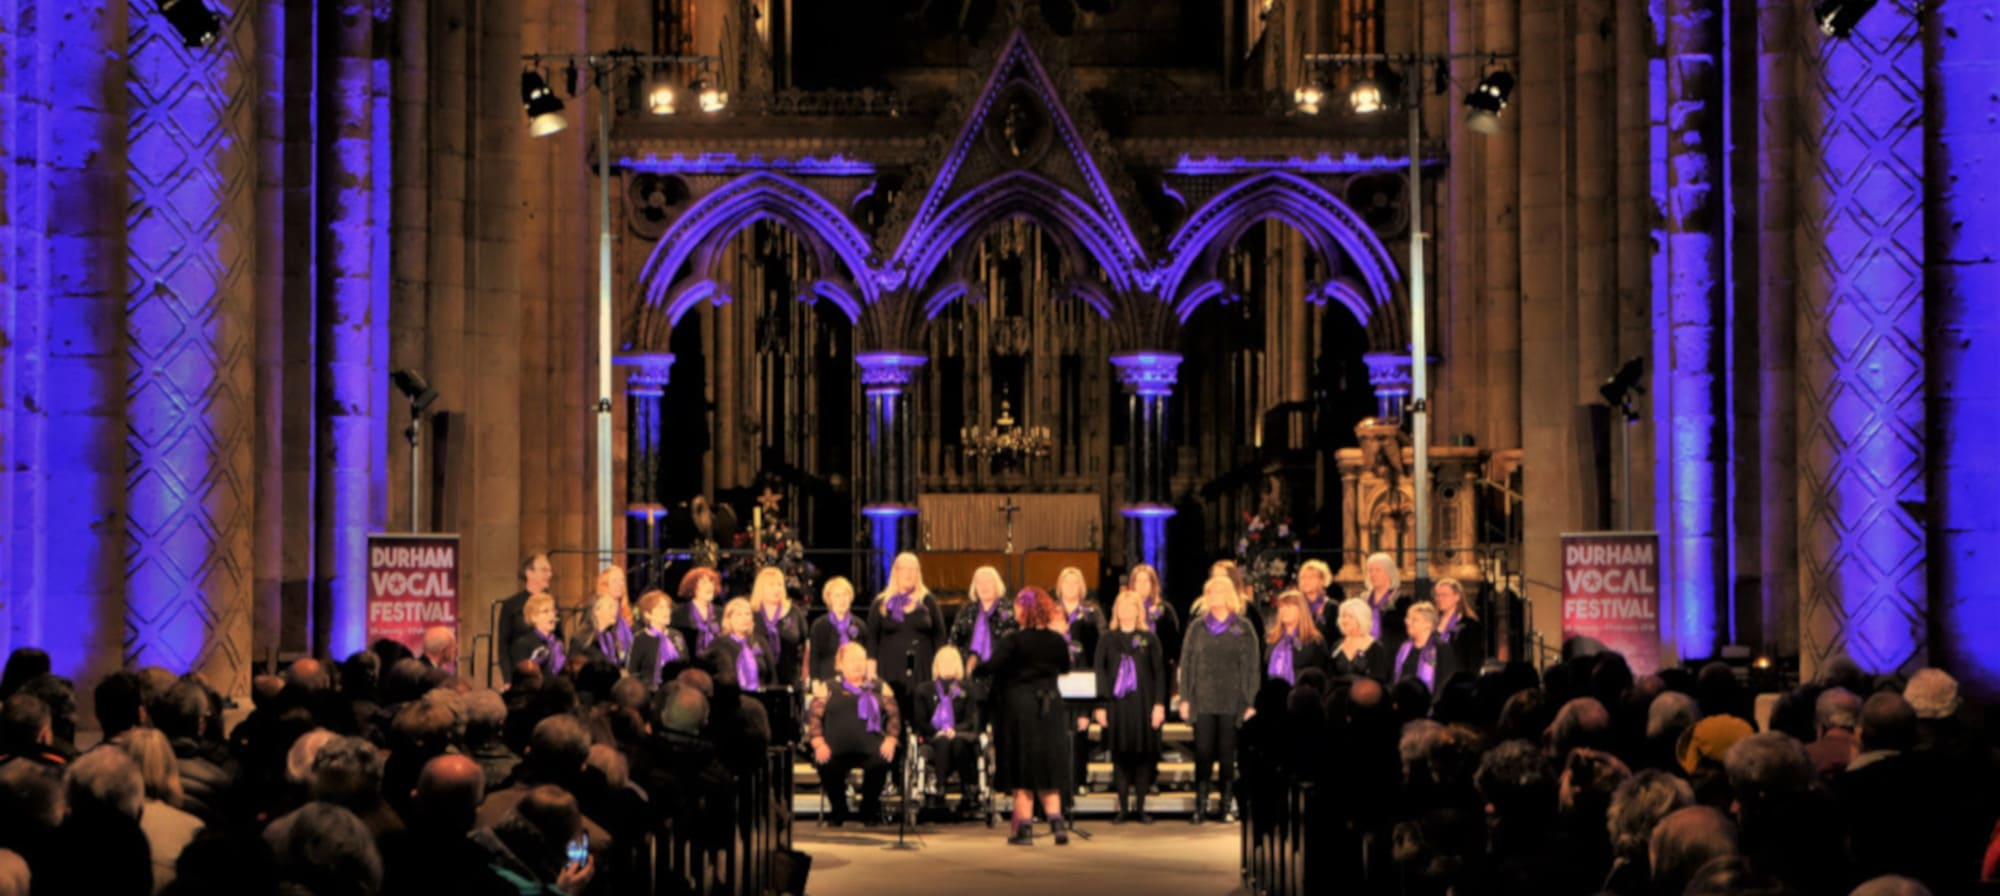 Unity Choir. led by The Singing Elf, performing at Durham Vocal Festival at Durham Cathedral Feb 2019